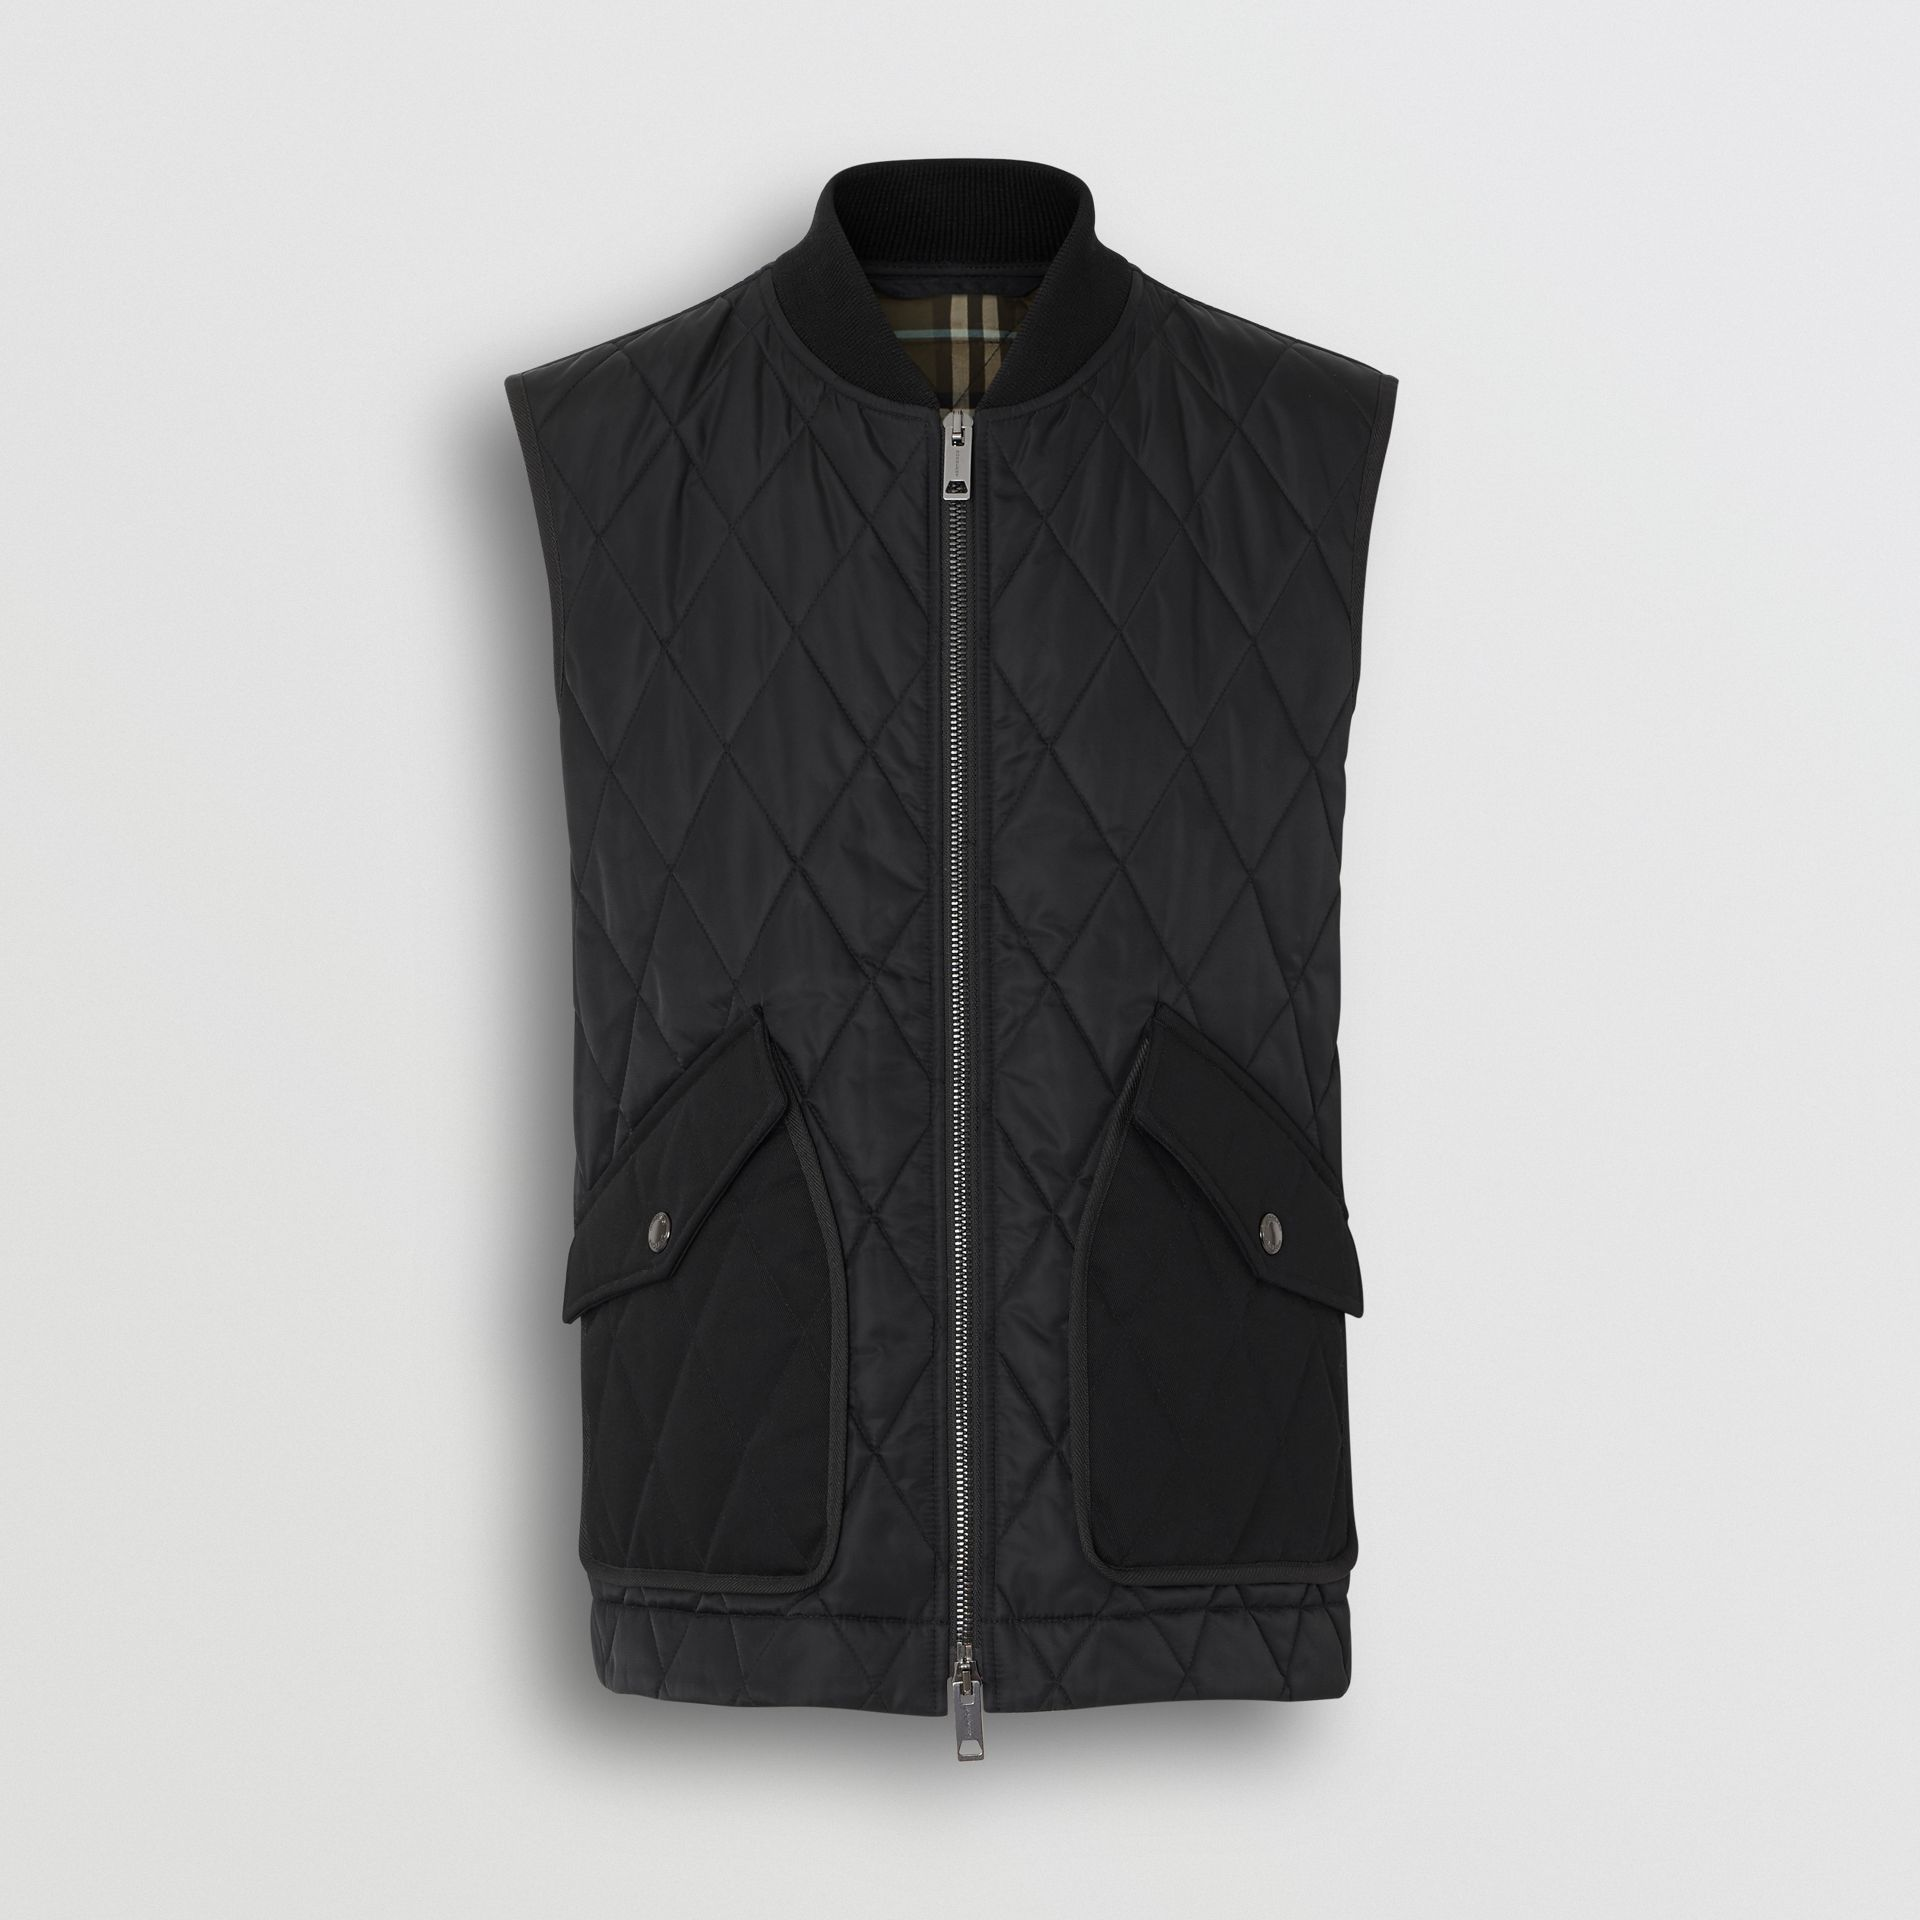 Monogram Motif Diamond Quilted Gilet in Black - Men | Burberry - gallery image 2